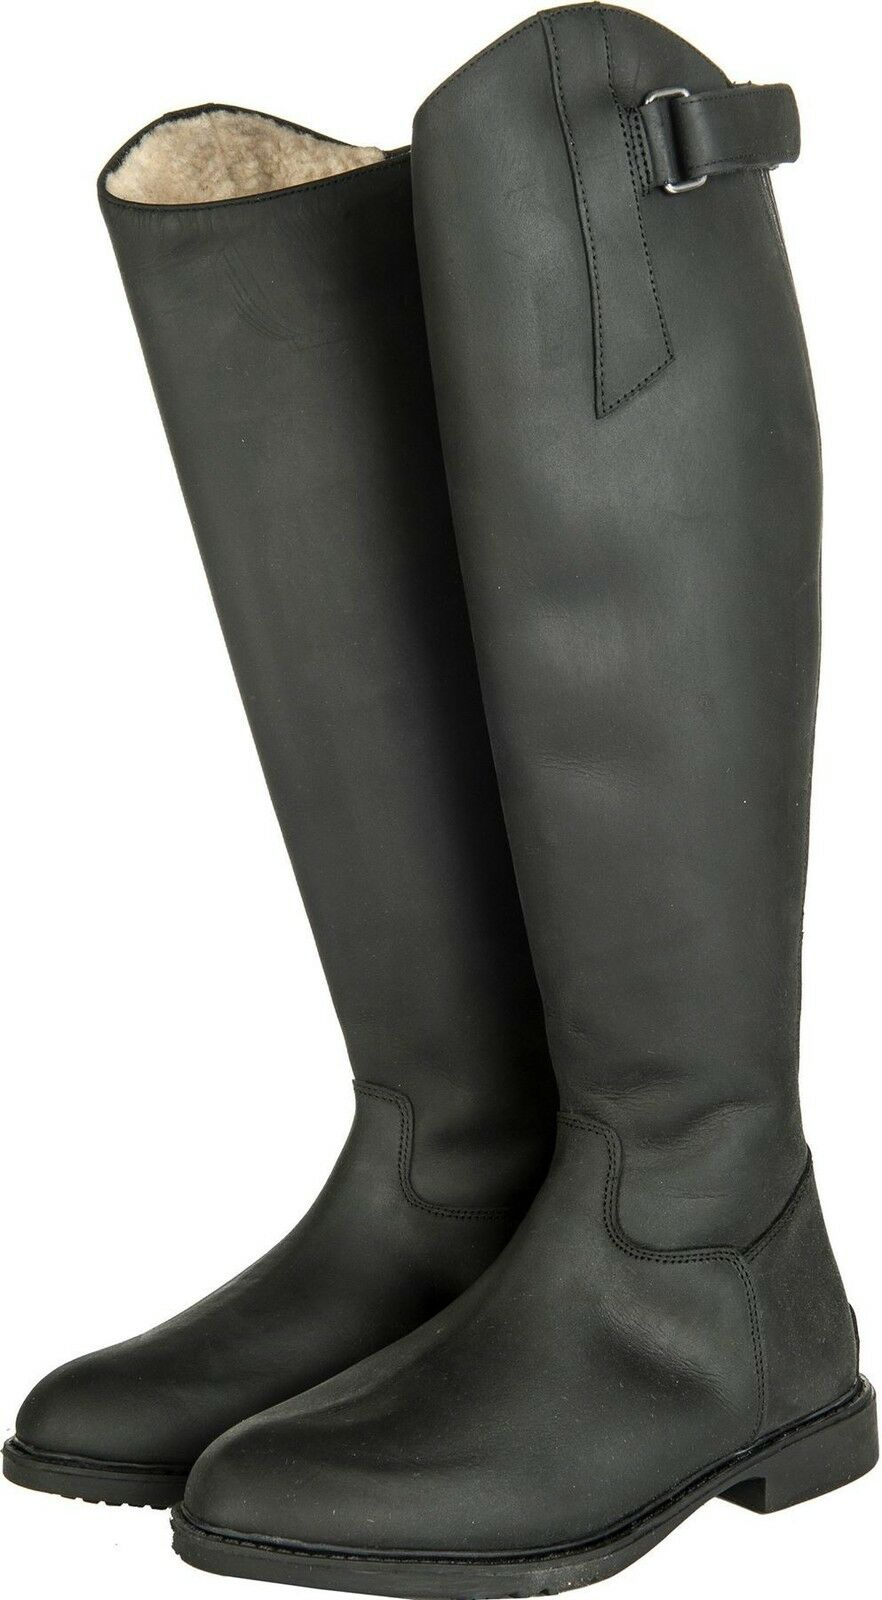 HKM Ladies Mens Flex Country Zip Waterproof Standard Leather Horse Riding Boots